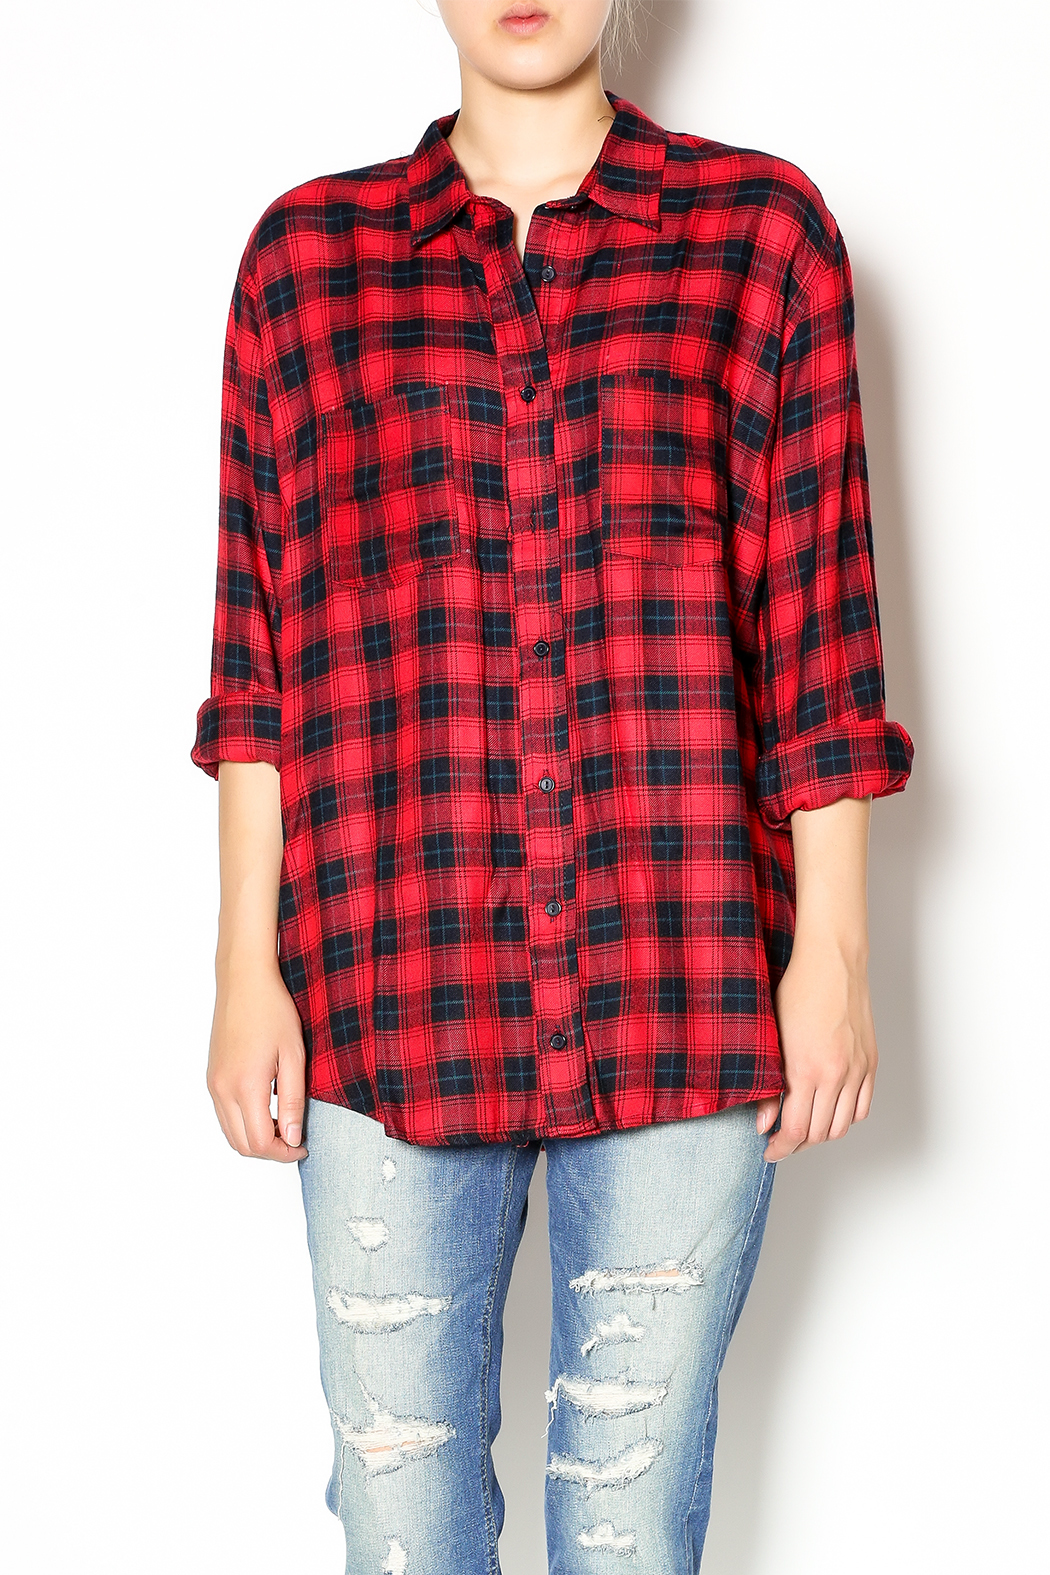 Cecico red black plaid shirt from balboa island by gypsy for Dark red plaid shirt